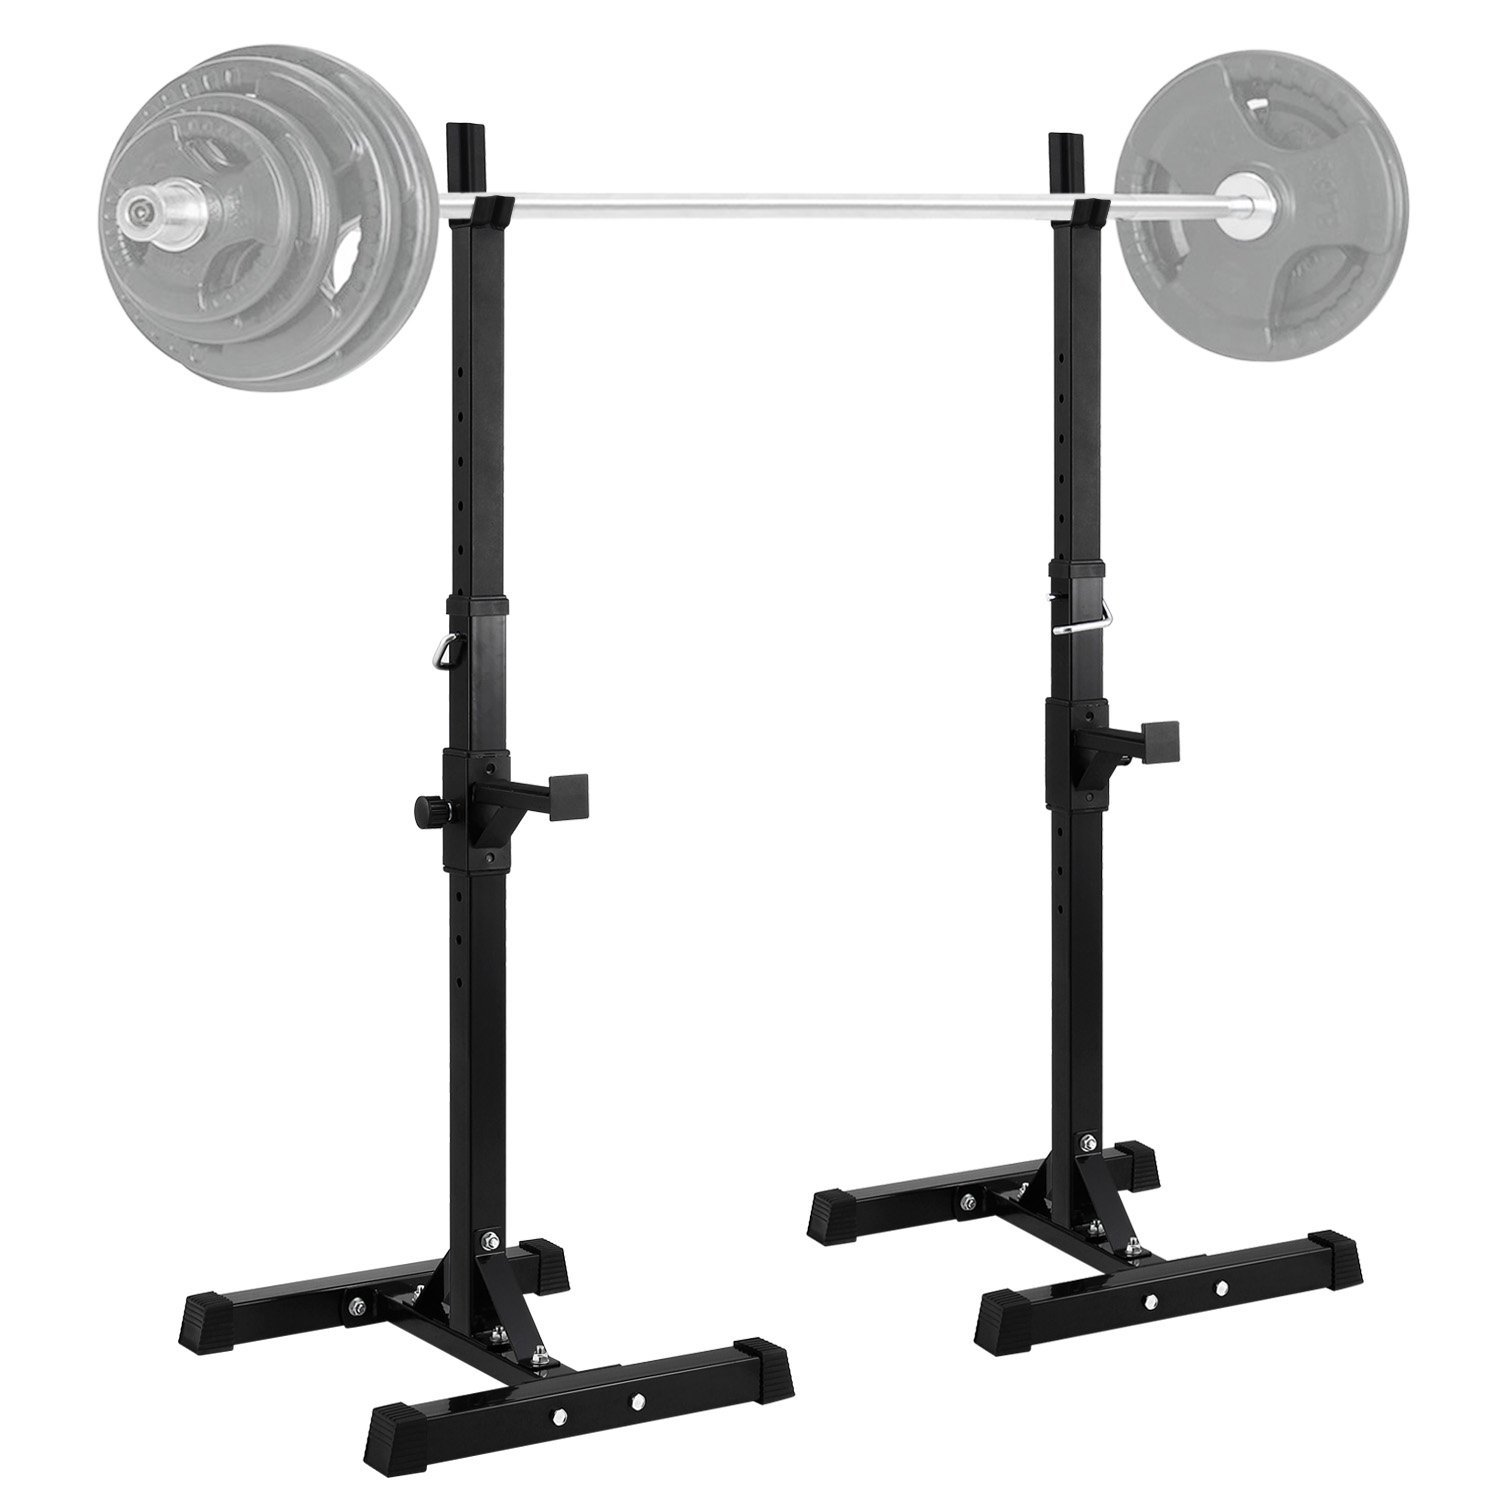 Squat Rack for Sale | Squat Station | Squat Racks Cheap